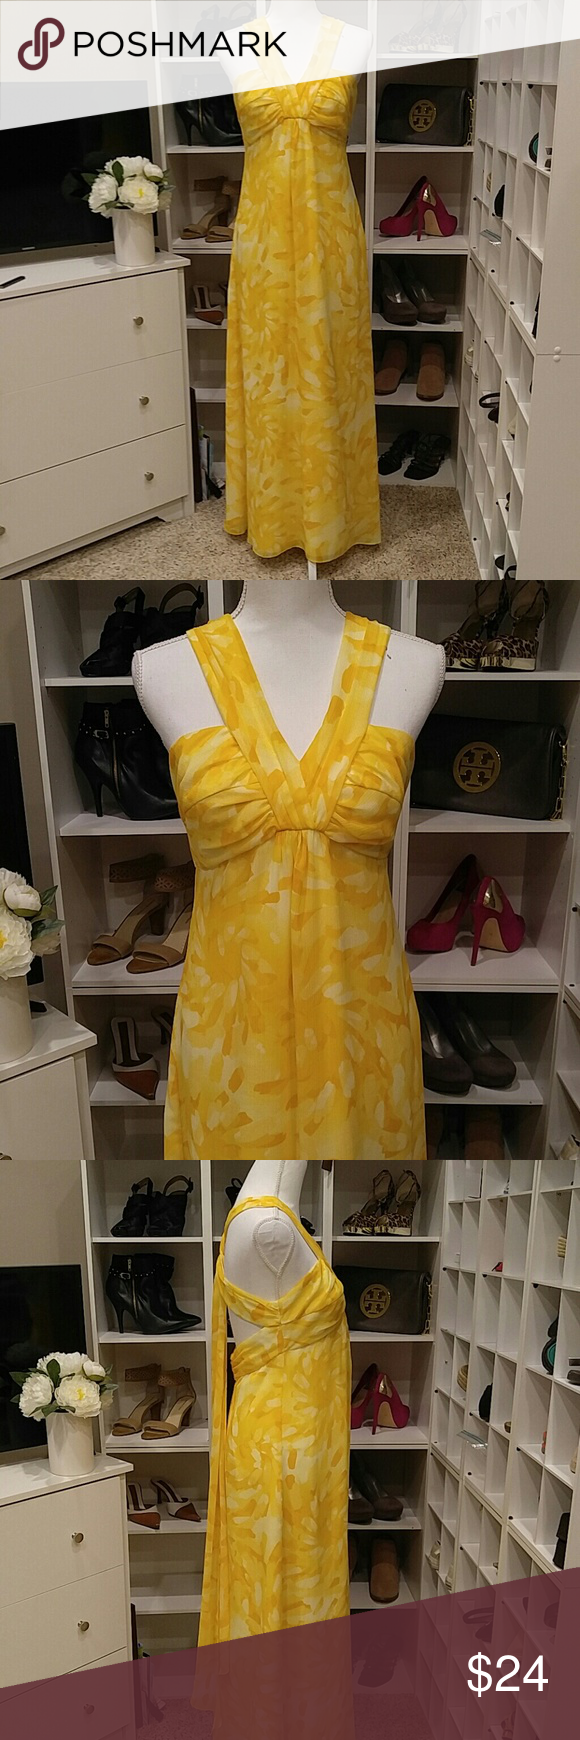 Davids bridal yellow strappy maxi dress be a goddess in this